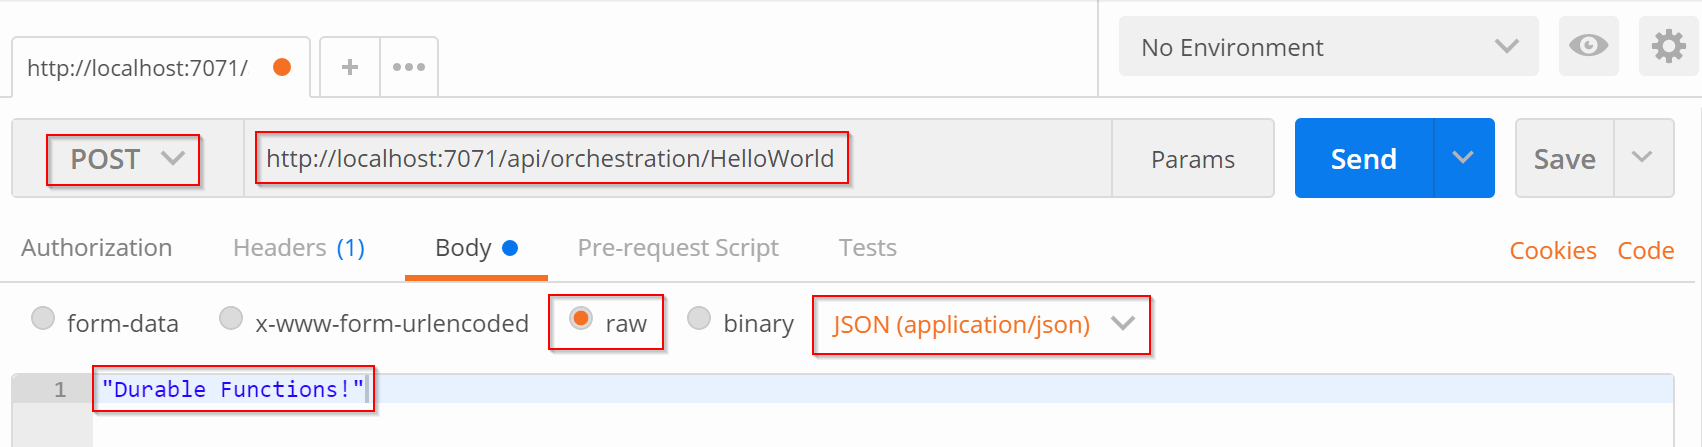 Request to orchestration/HelloWorld